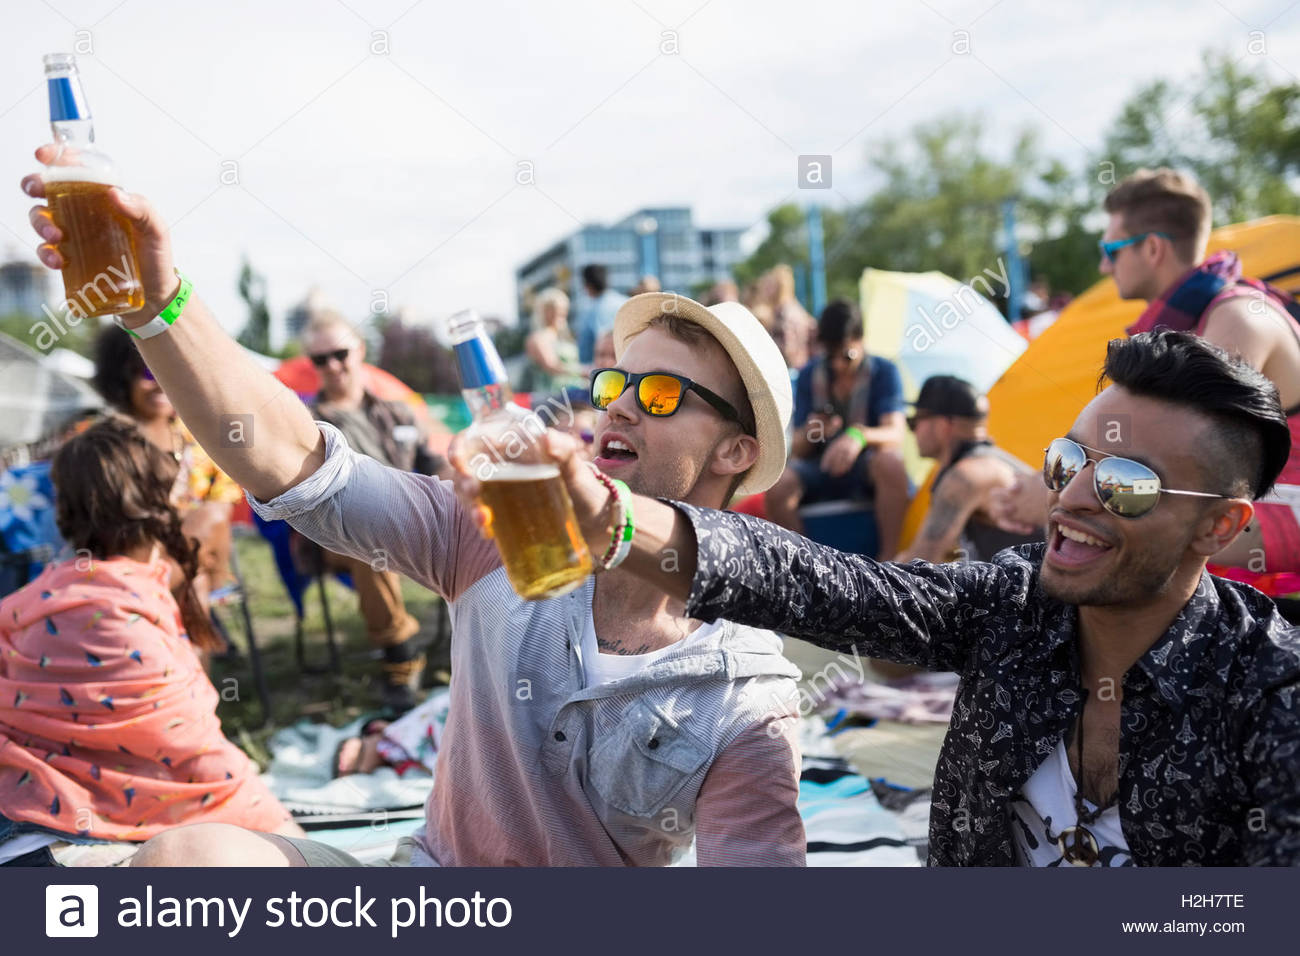 Young men drinking beer cheering at summer music festival campsite - Stock Image